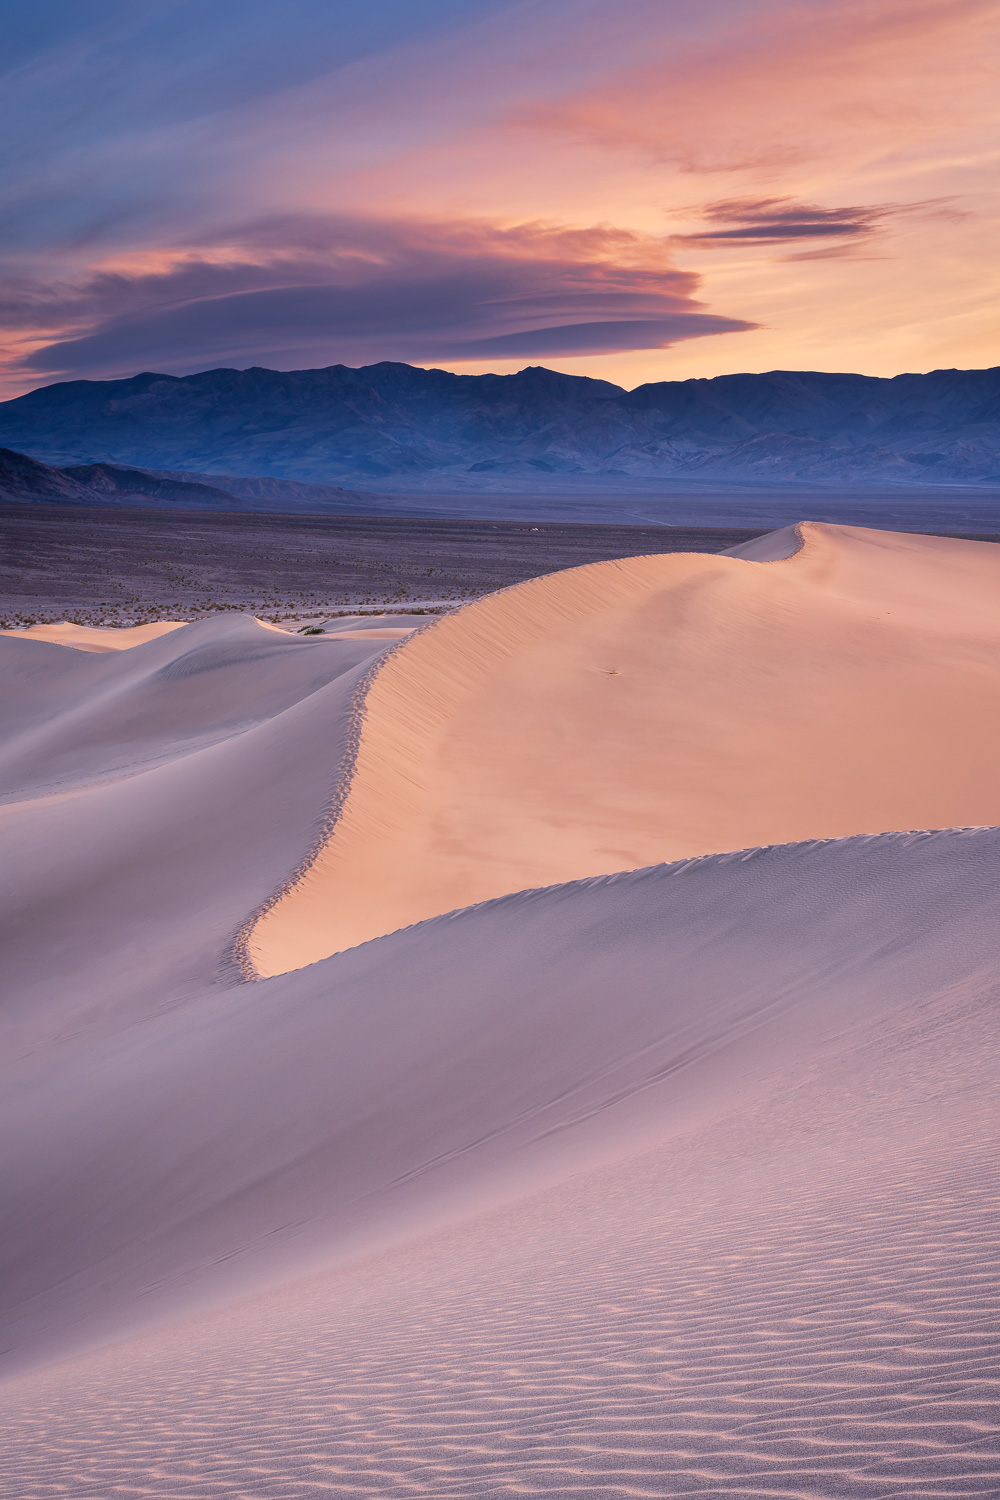 MAB-20190408-CA-DEATH-VALLEY-MESQUITE-DUNES-71468.jpg